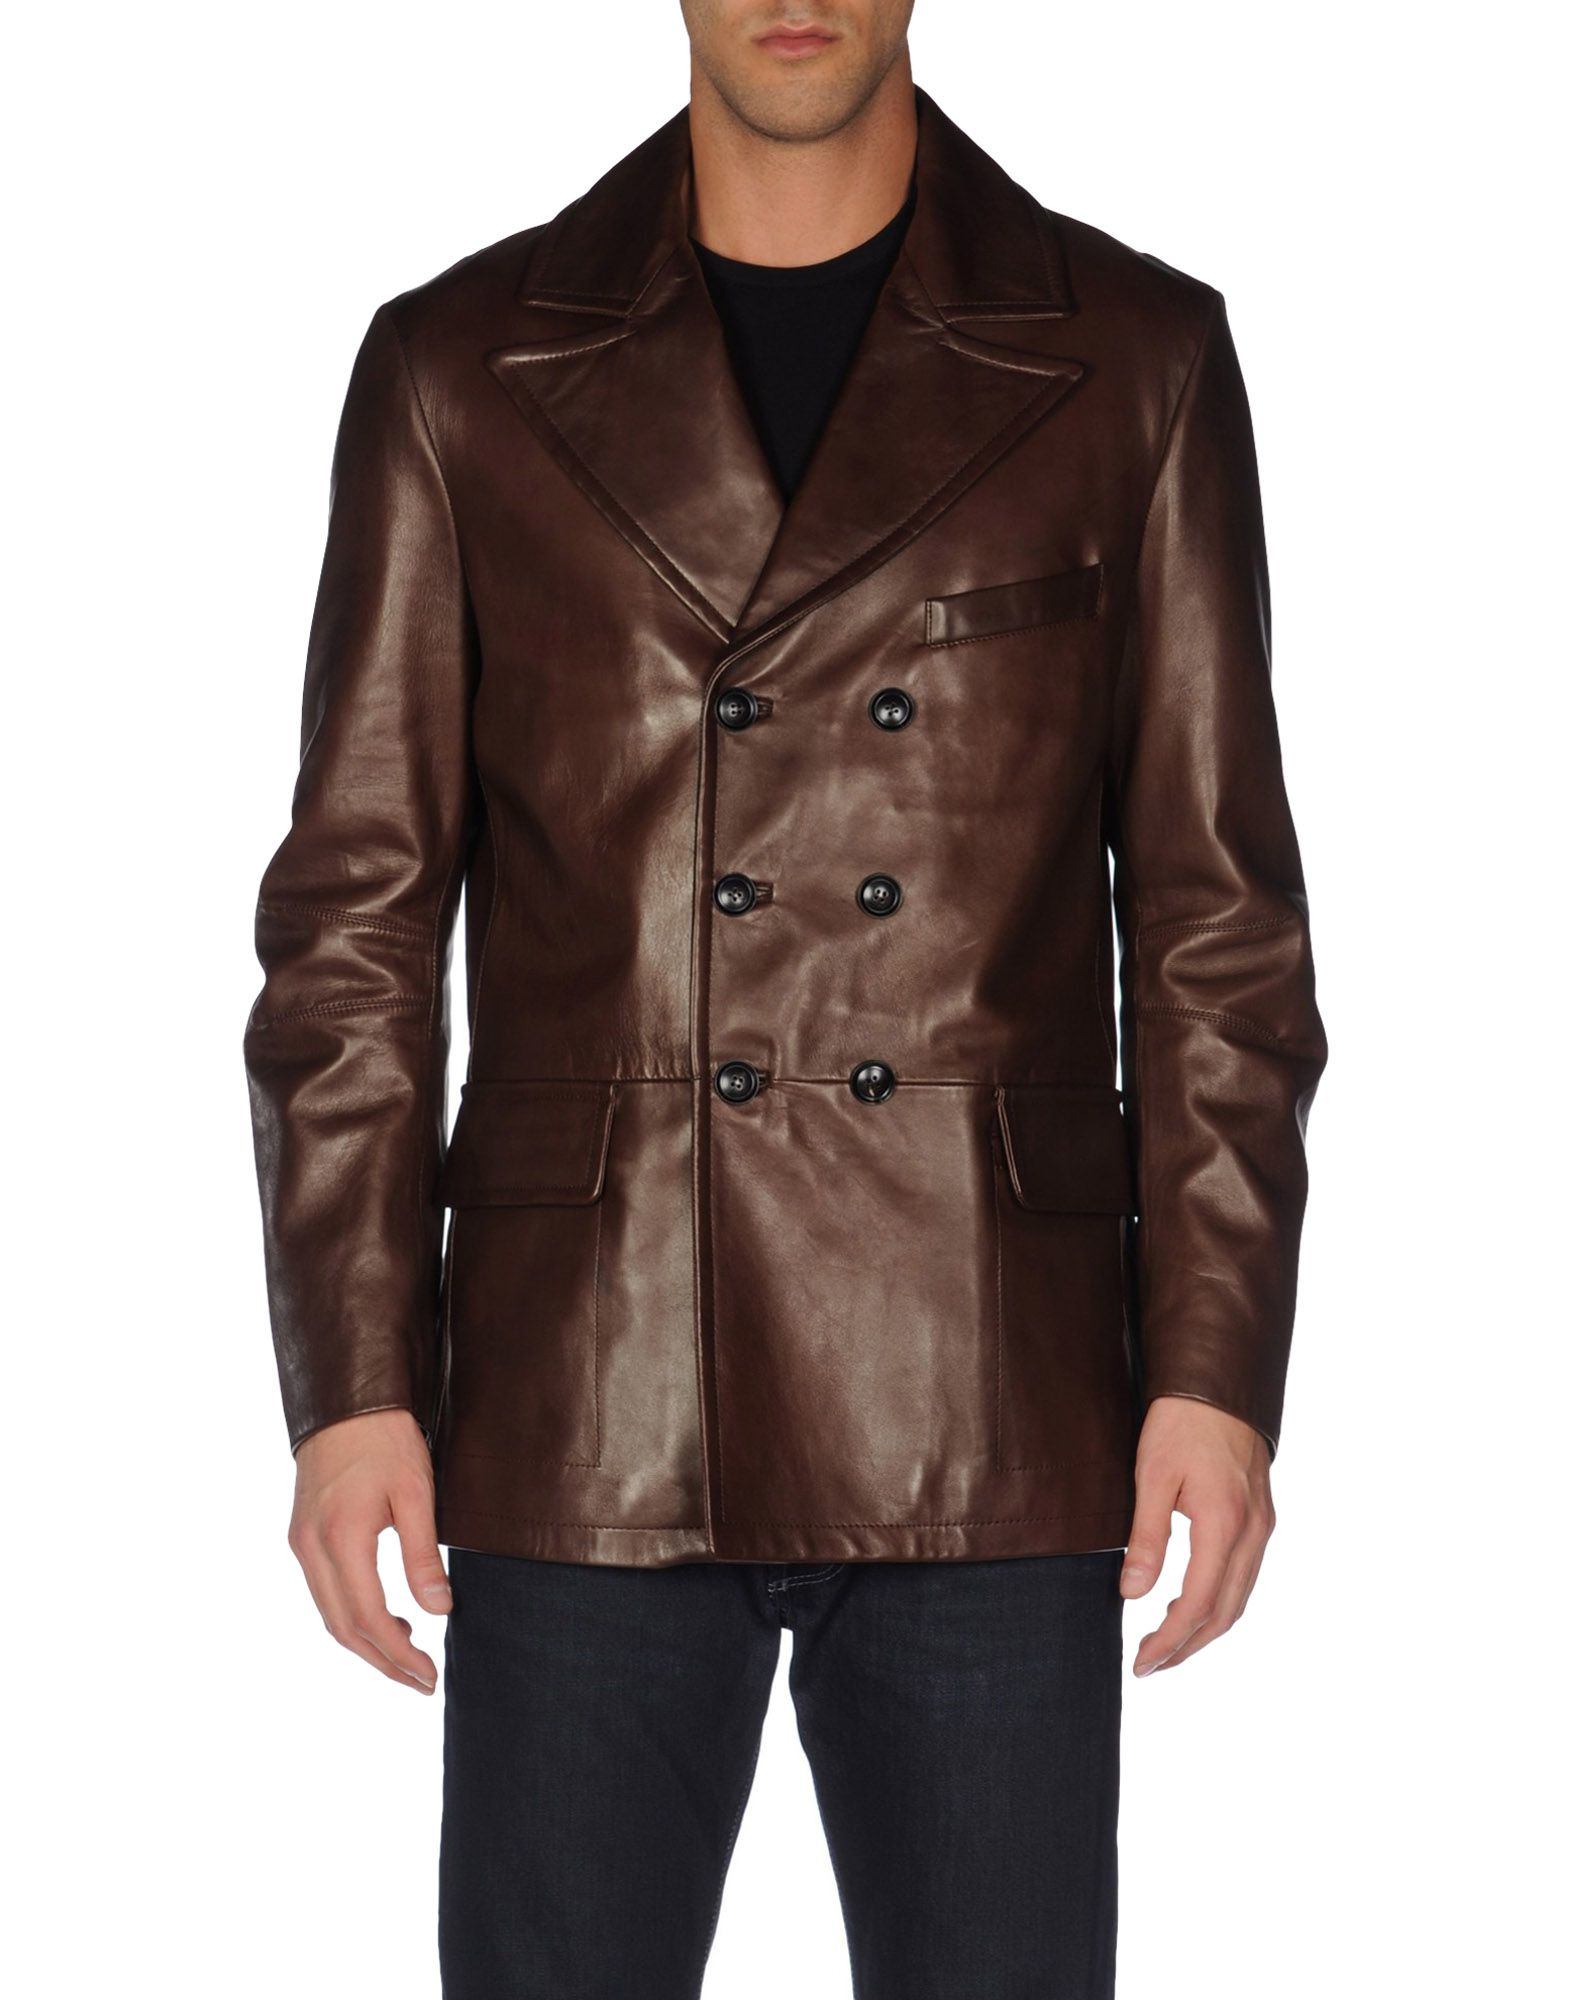 Free Shipping on many items across the worlds largest range of Nordstrom Leather Coats & Jackets for Men. Find the perfect Christmas gift ideas with eBay.